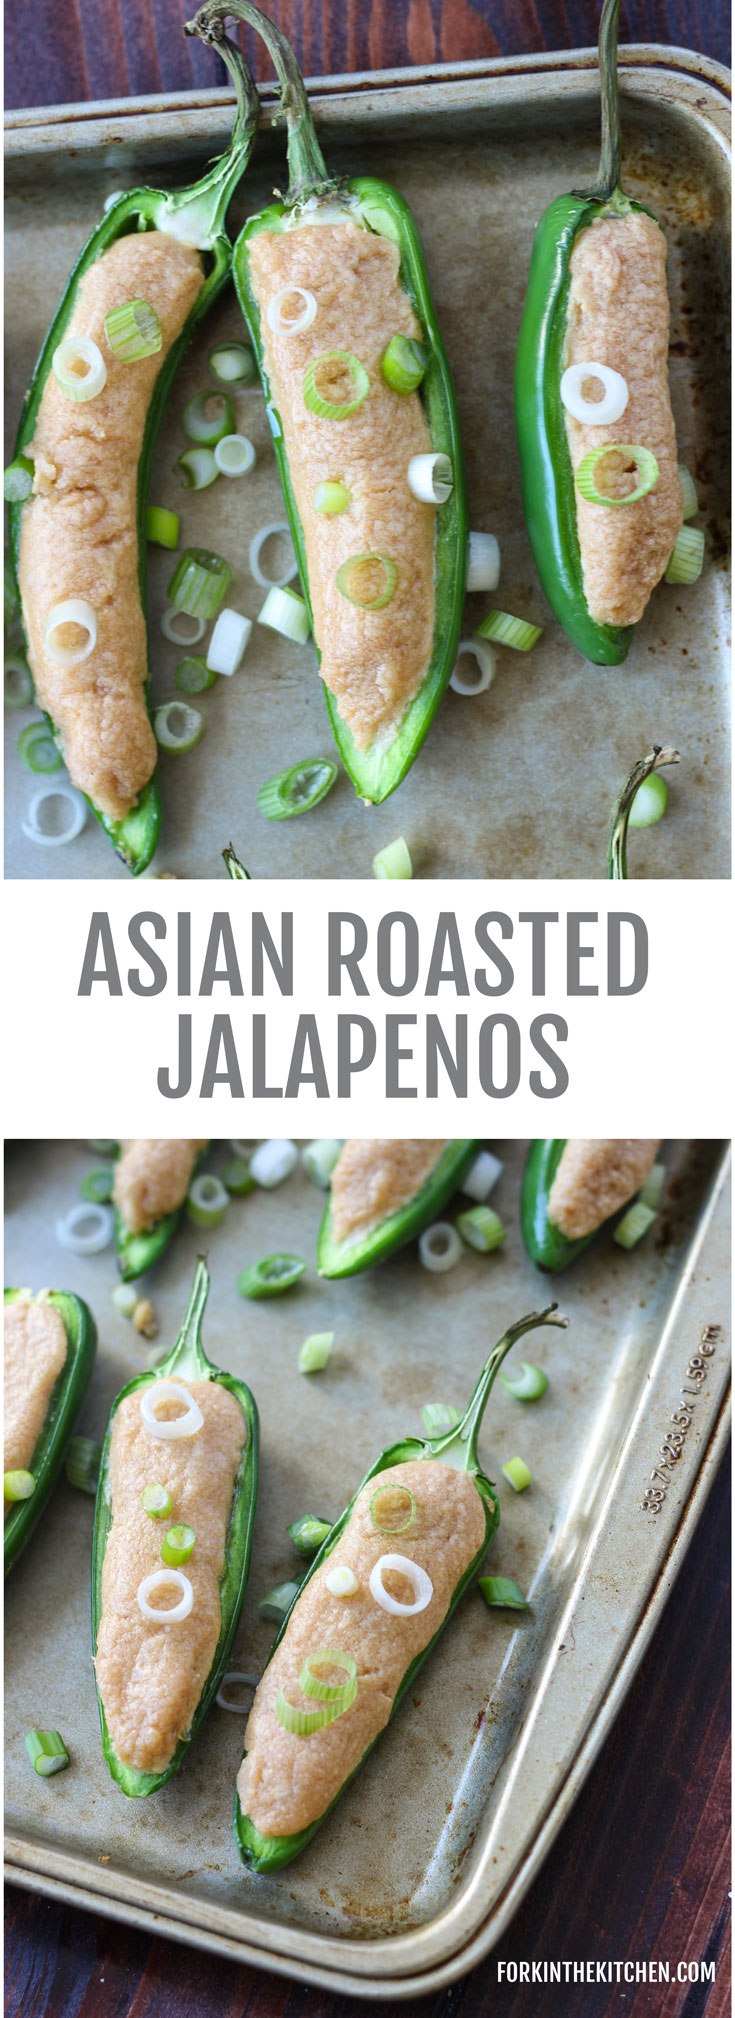 Asian Roasted Jalapenos - an excellent two-bite appetizer, spicy and creamy all in one! // Fork in the Kitchen